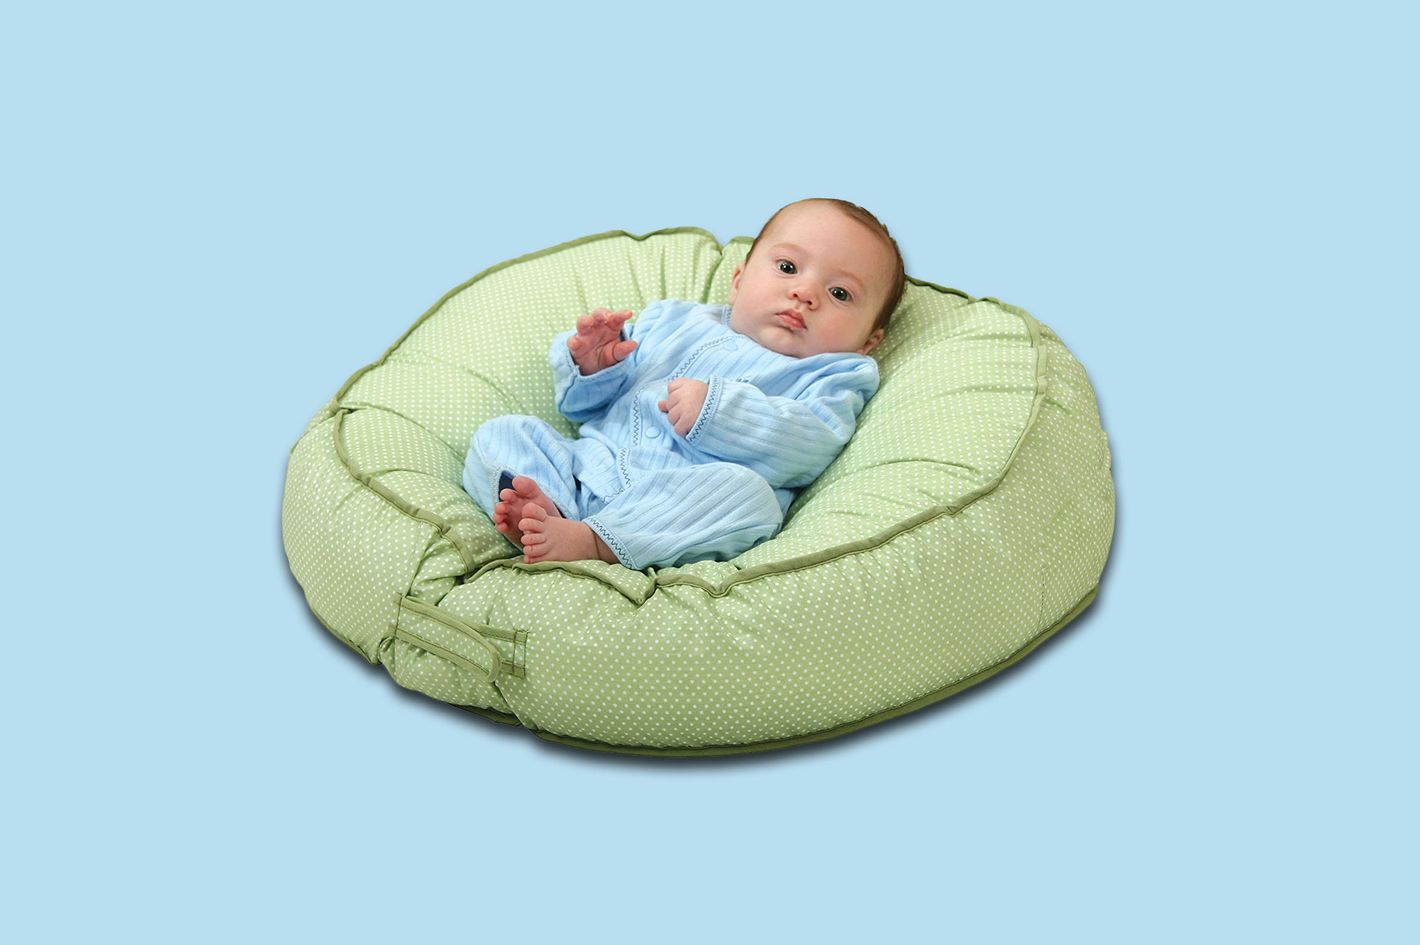 The Best Baby Lounger Is the Leacho Podster